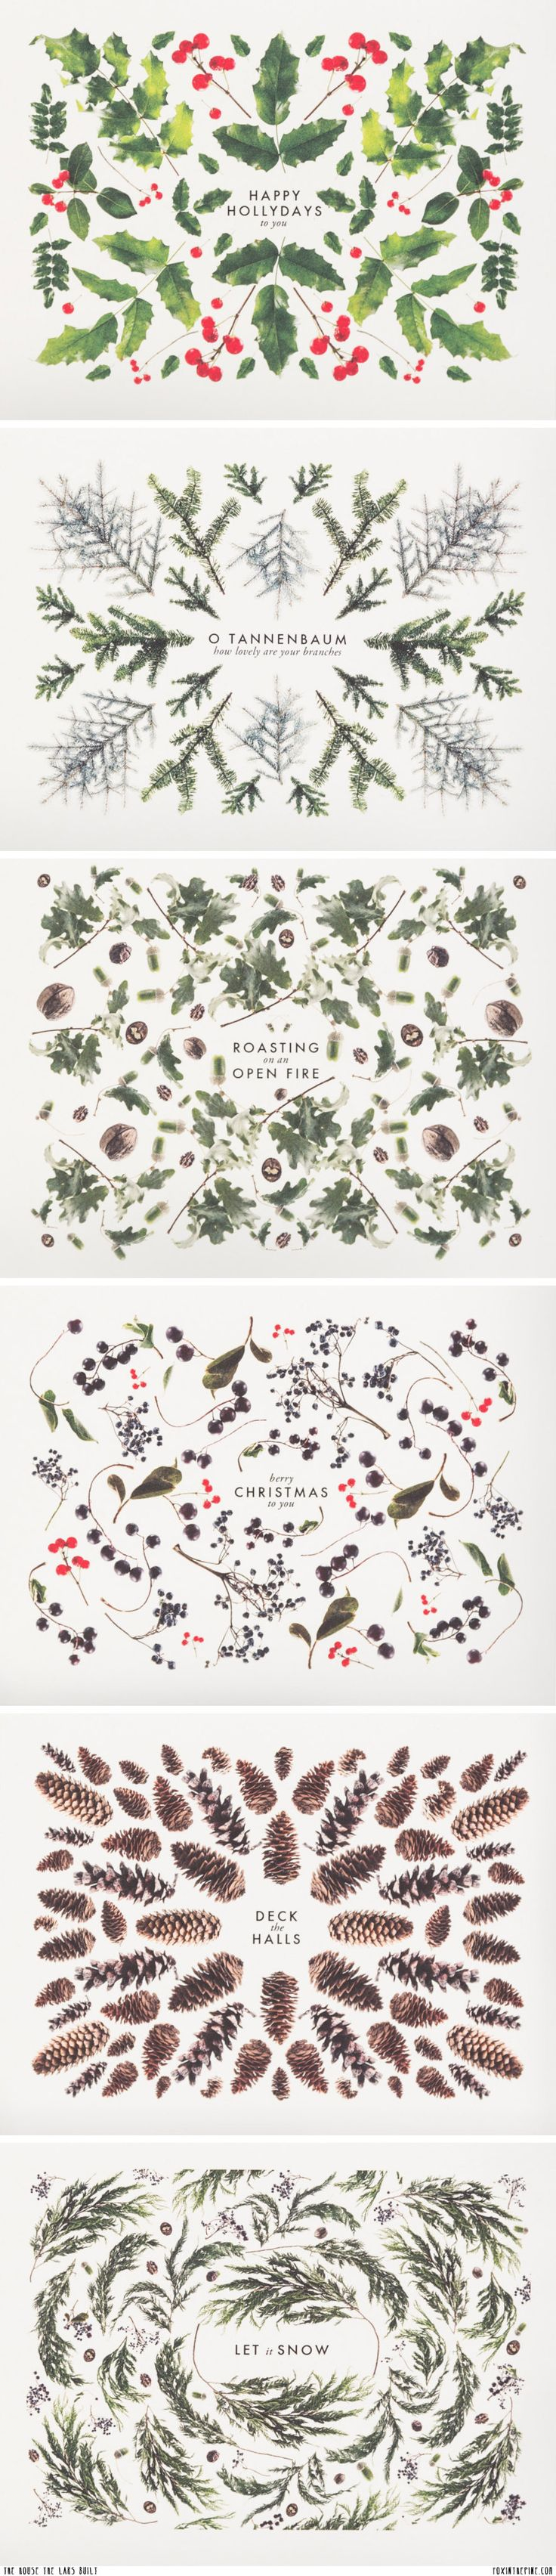 Christmas Cards // The House that Lars Built, via Fox in the Pine